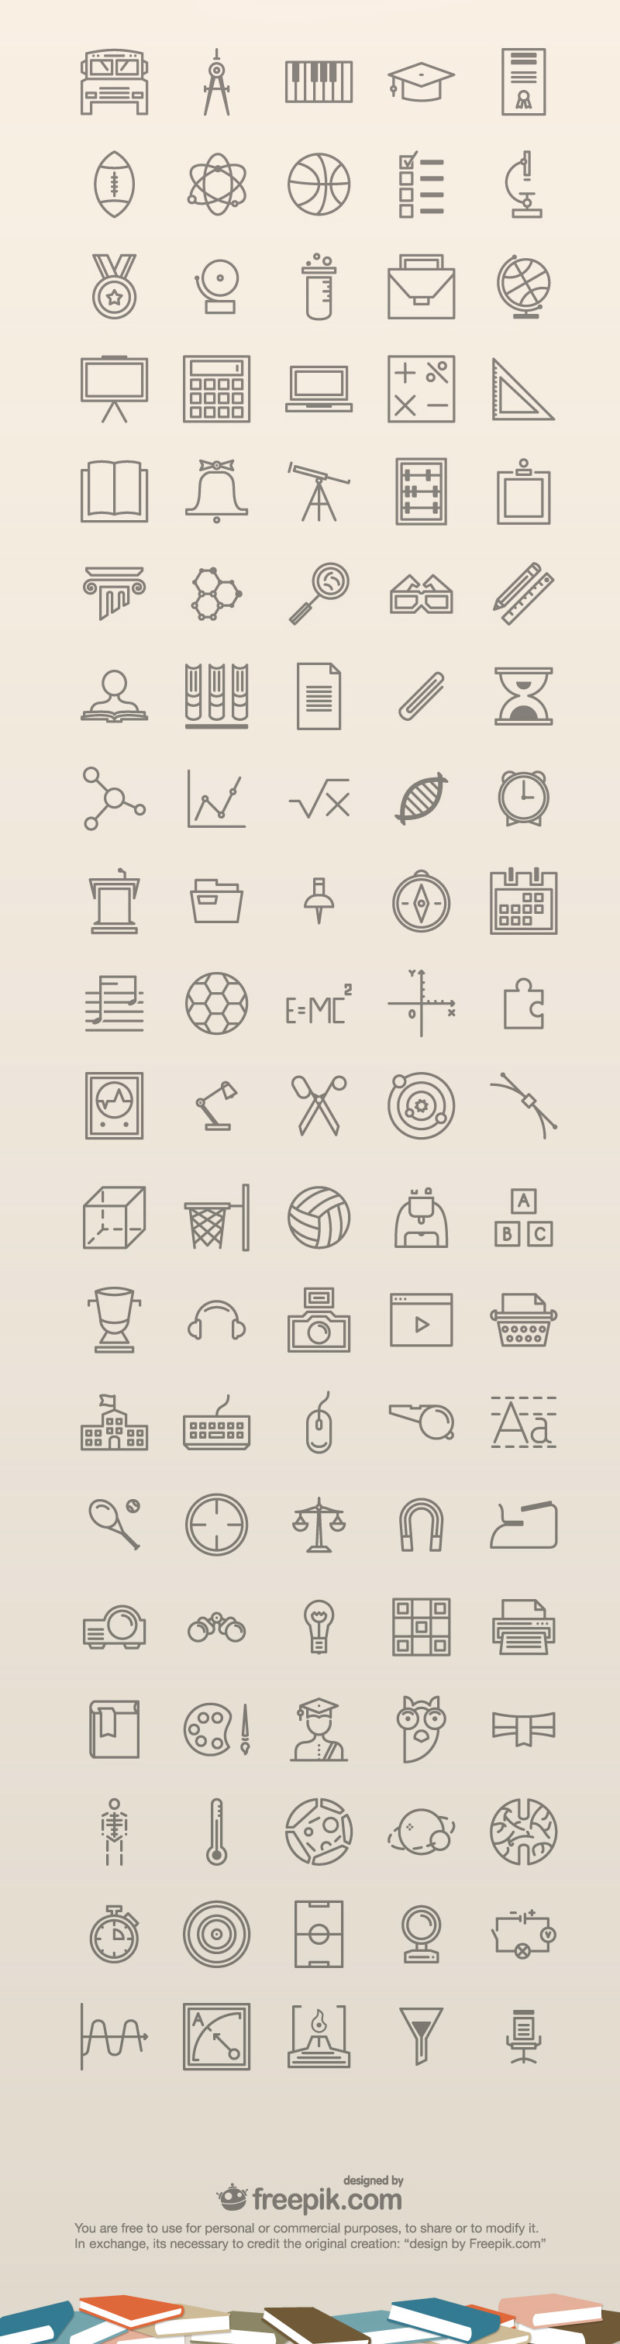 100+ Awesome Free Icons Sets